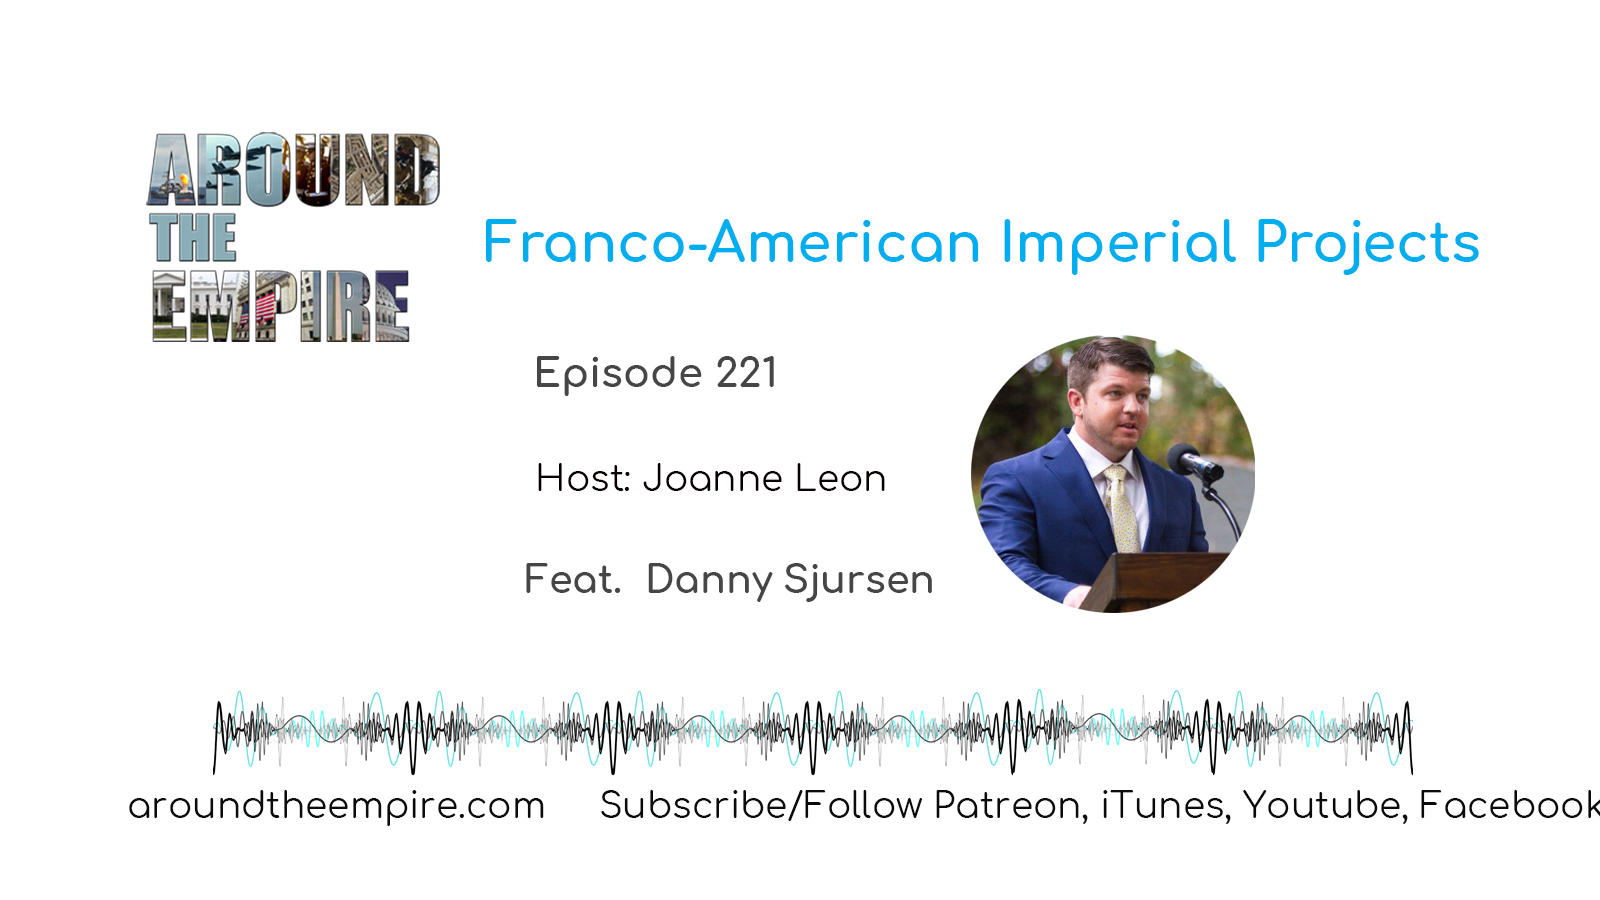 Ep 221 Franco-American Imperial Projects feat Danny Sjursen